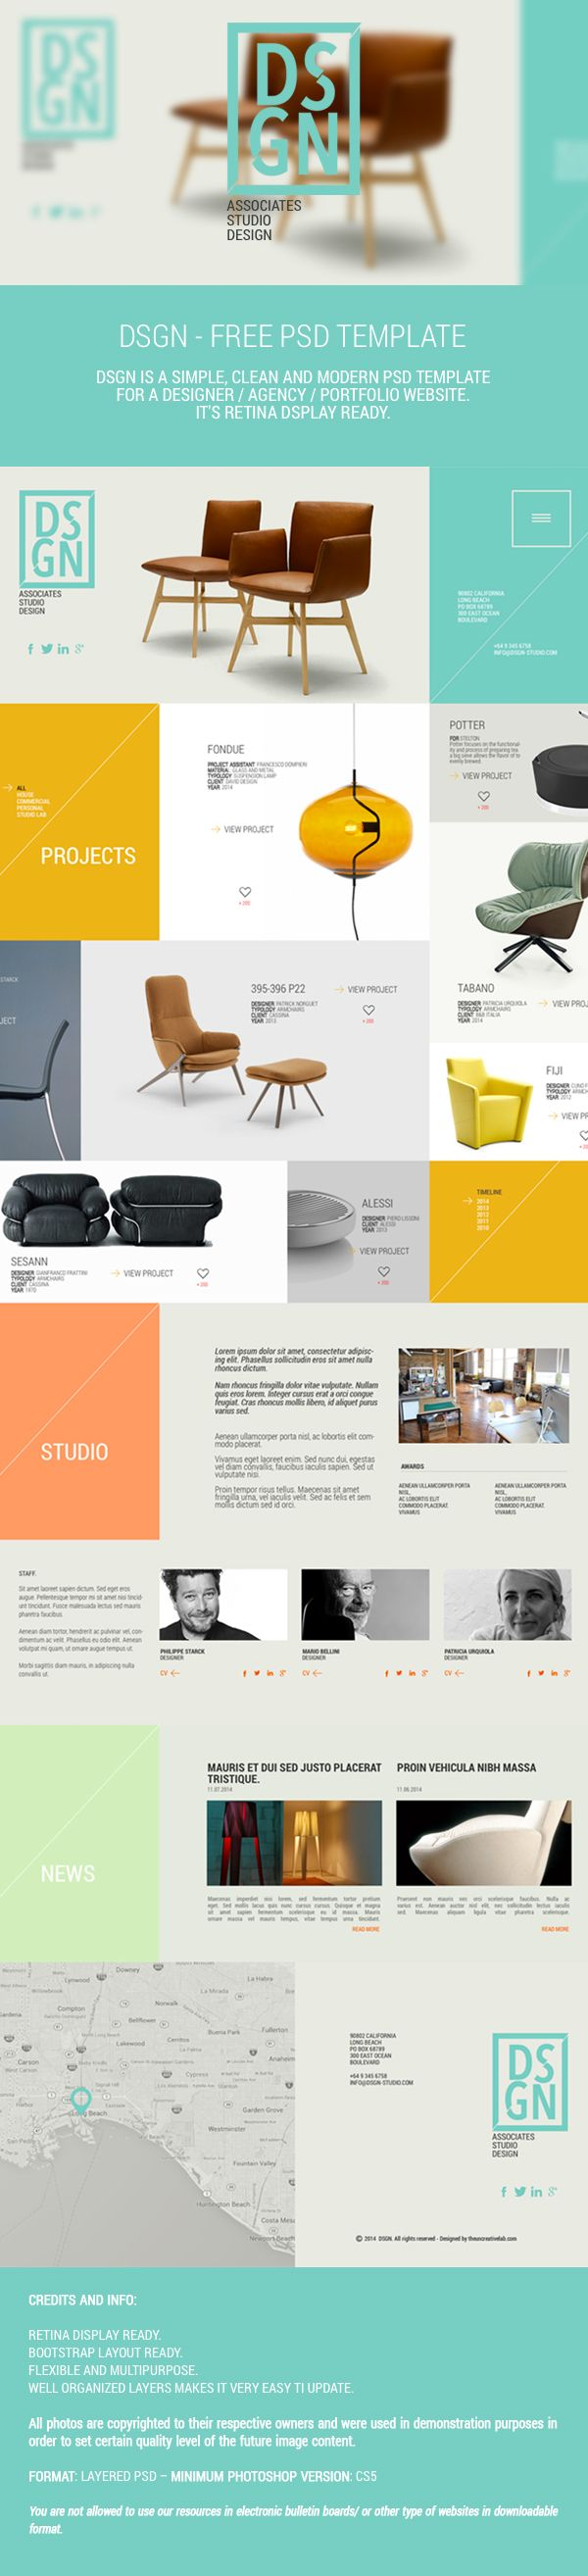 DSGN - Free .PSD Template by michele cialone, via Behance